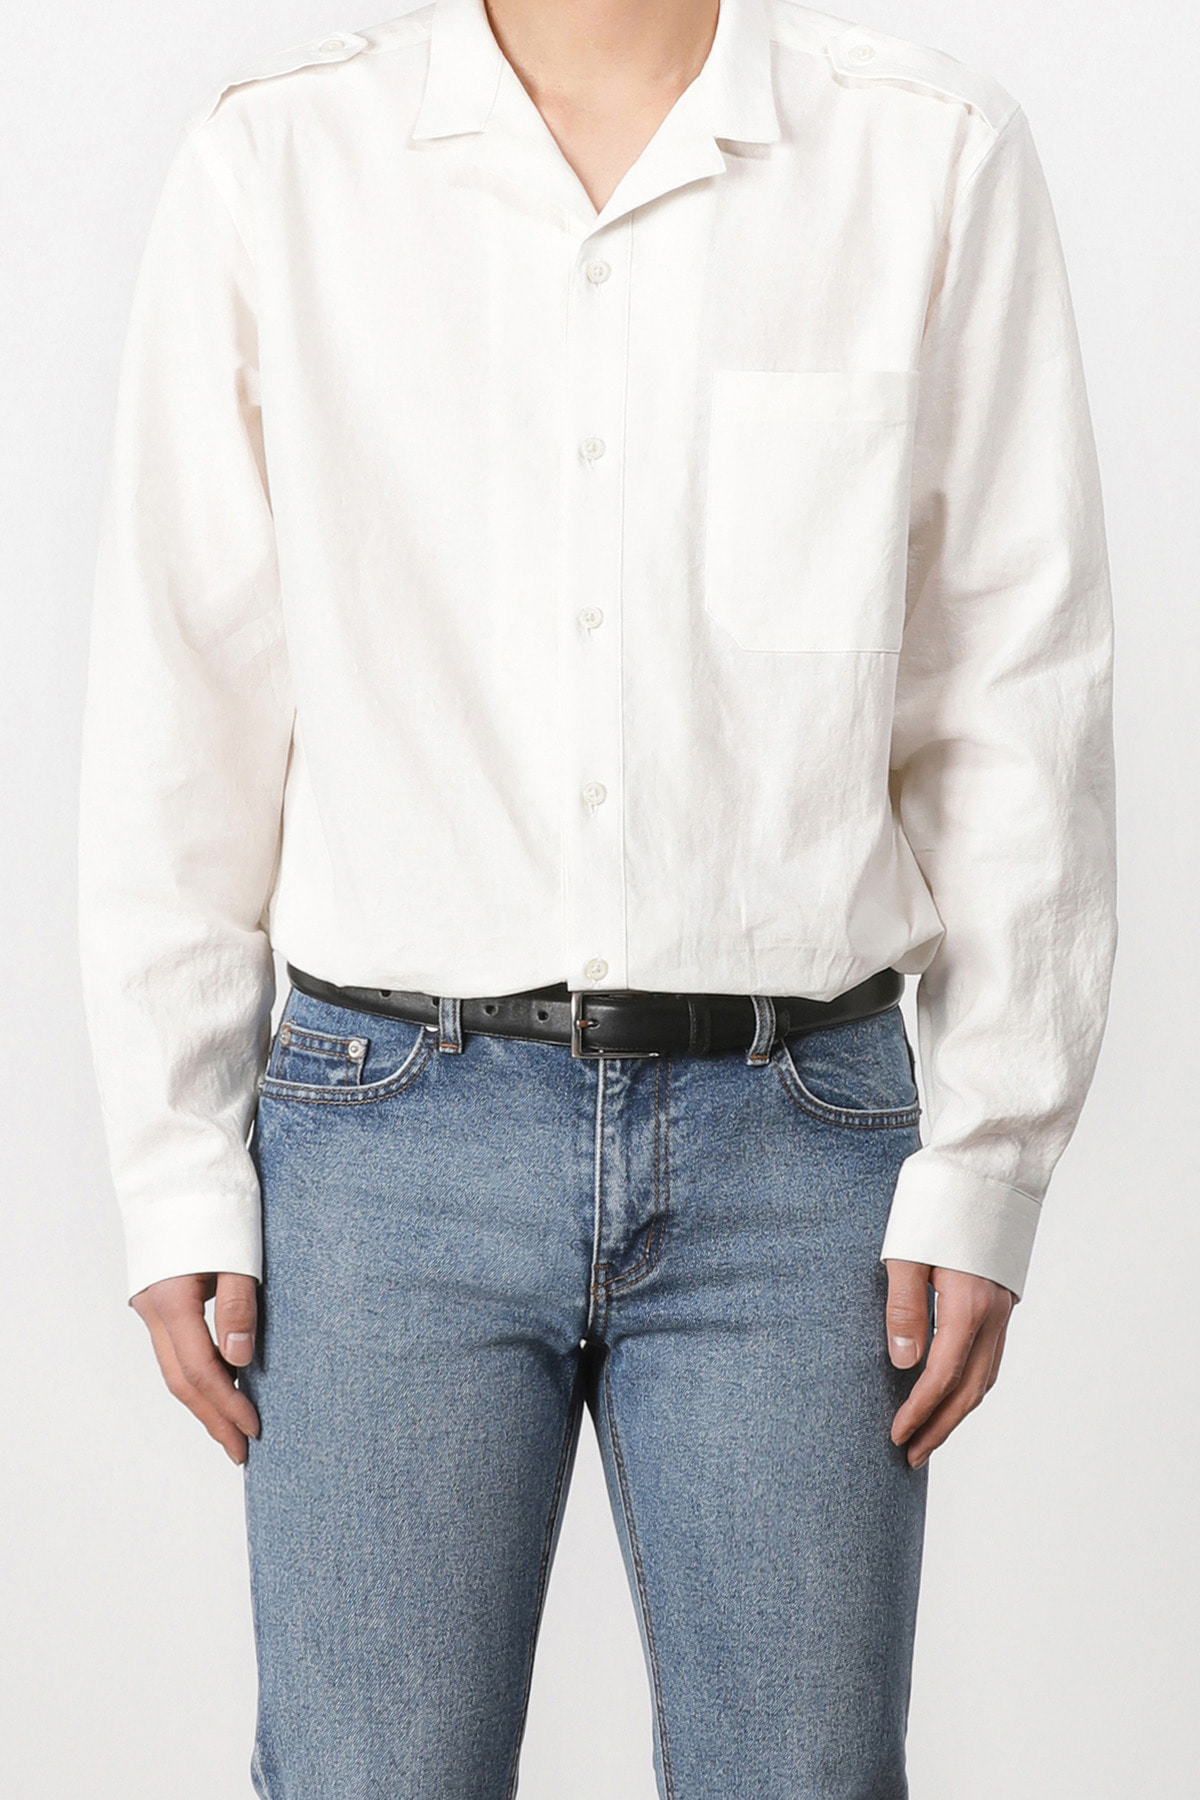 페이탈리즘 #jp42 Nakama open collar shirt (white)